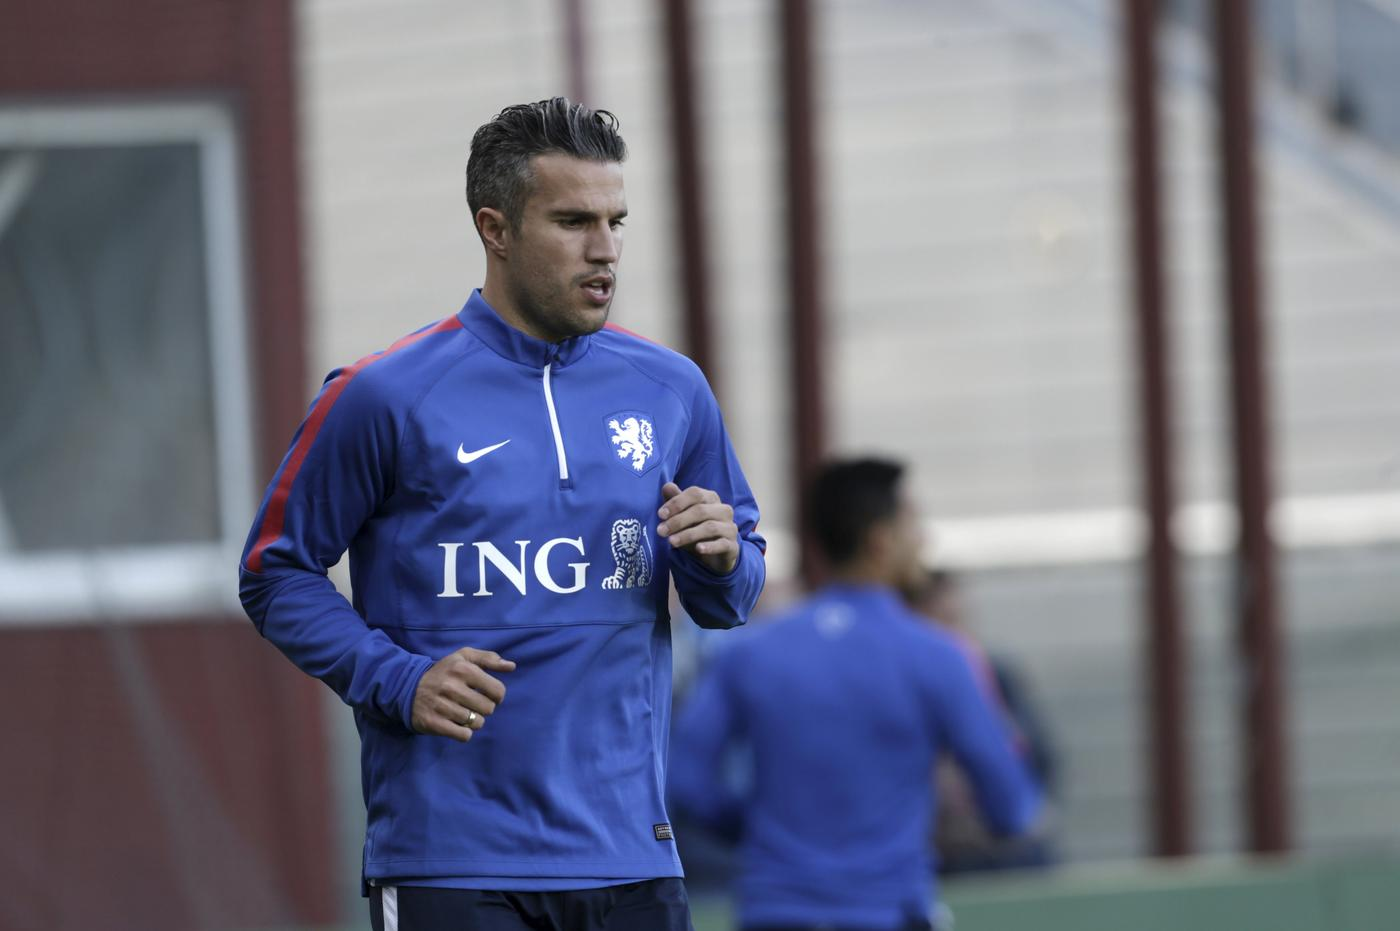 Netherlands' soccer team player van Persie attends a training session in Riga Ints Kalnins/Reuters